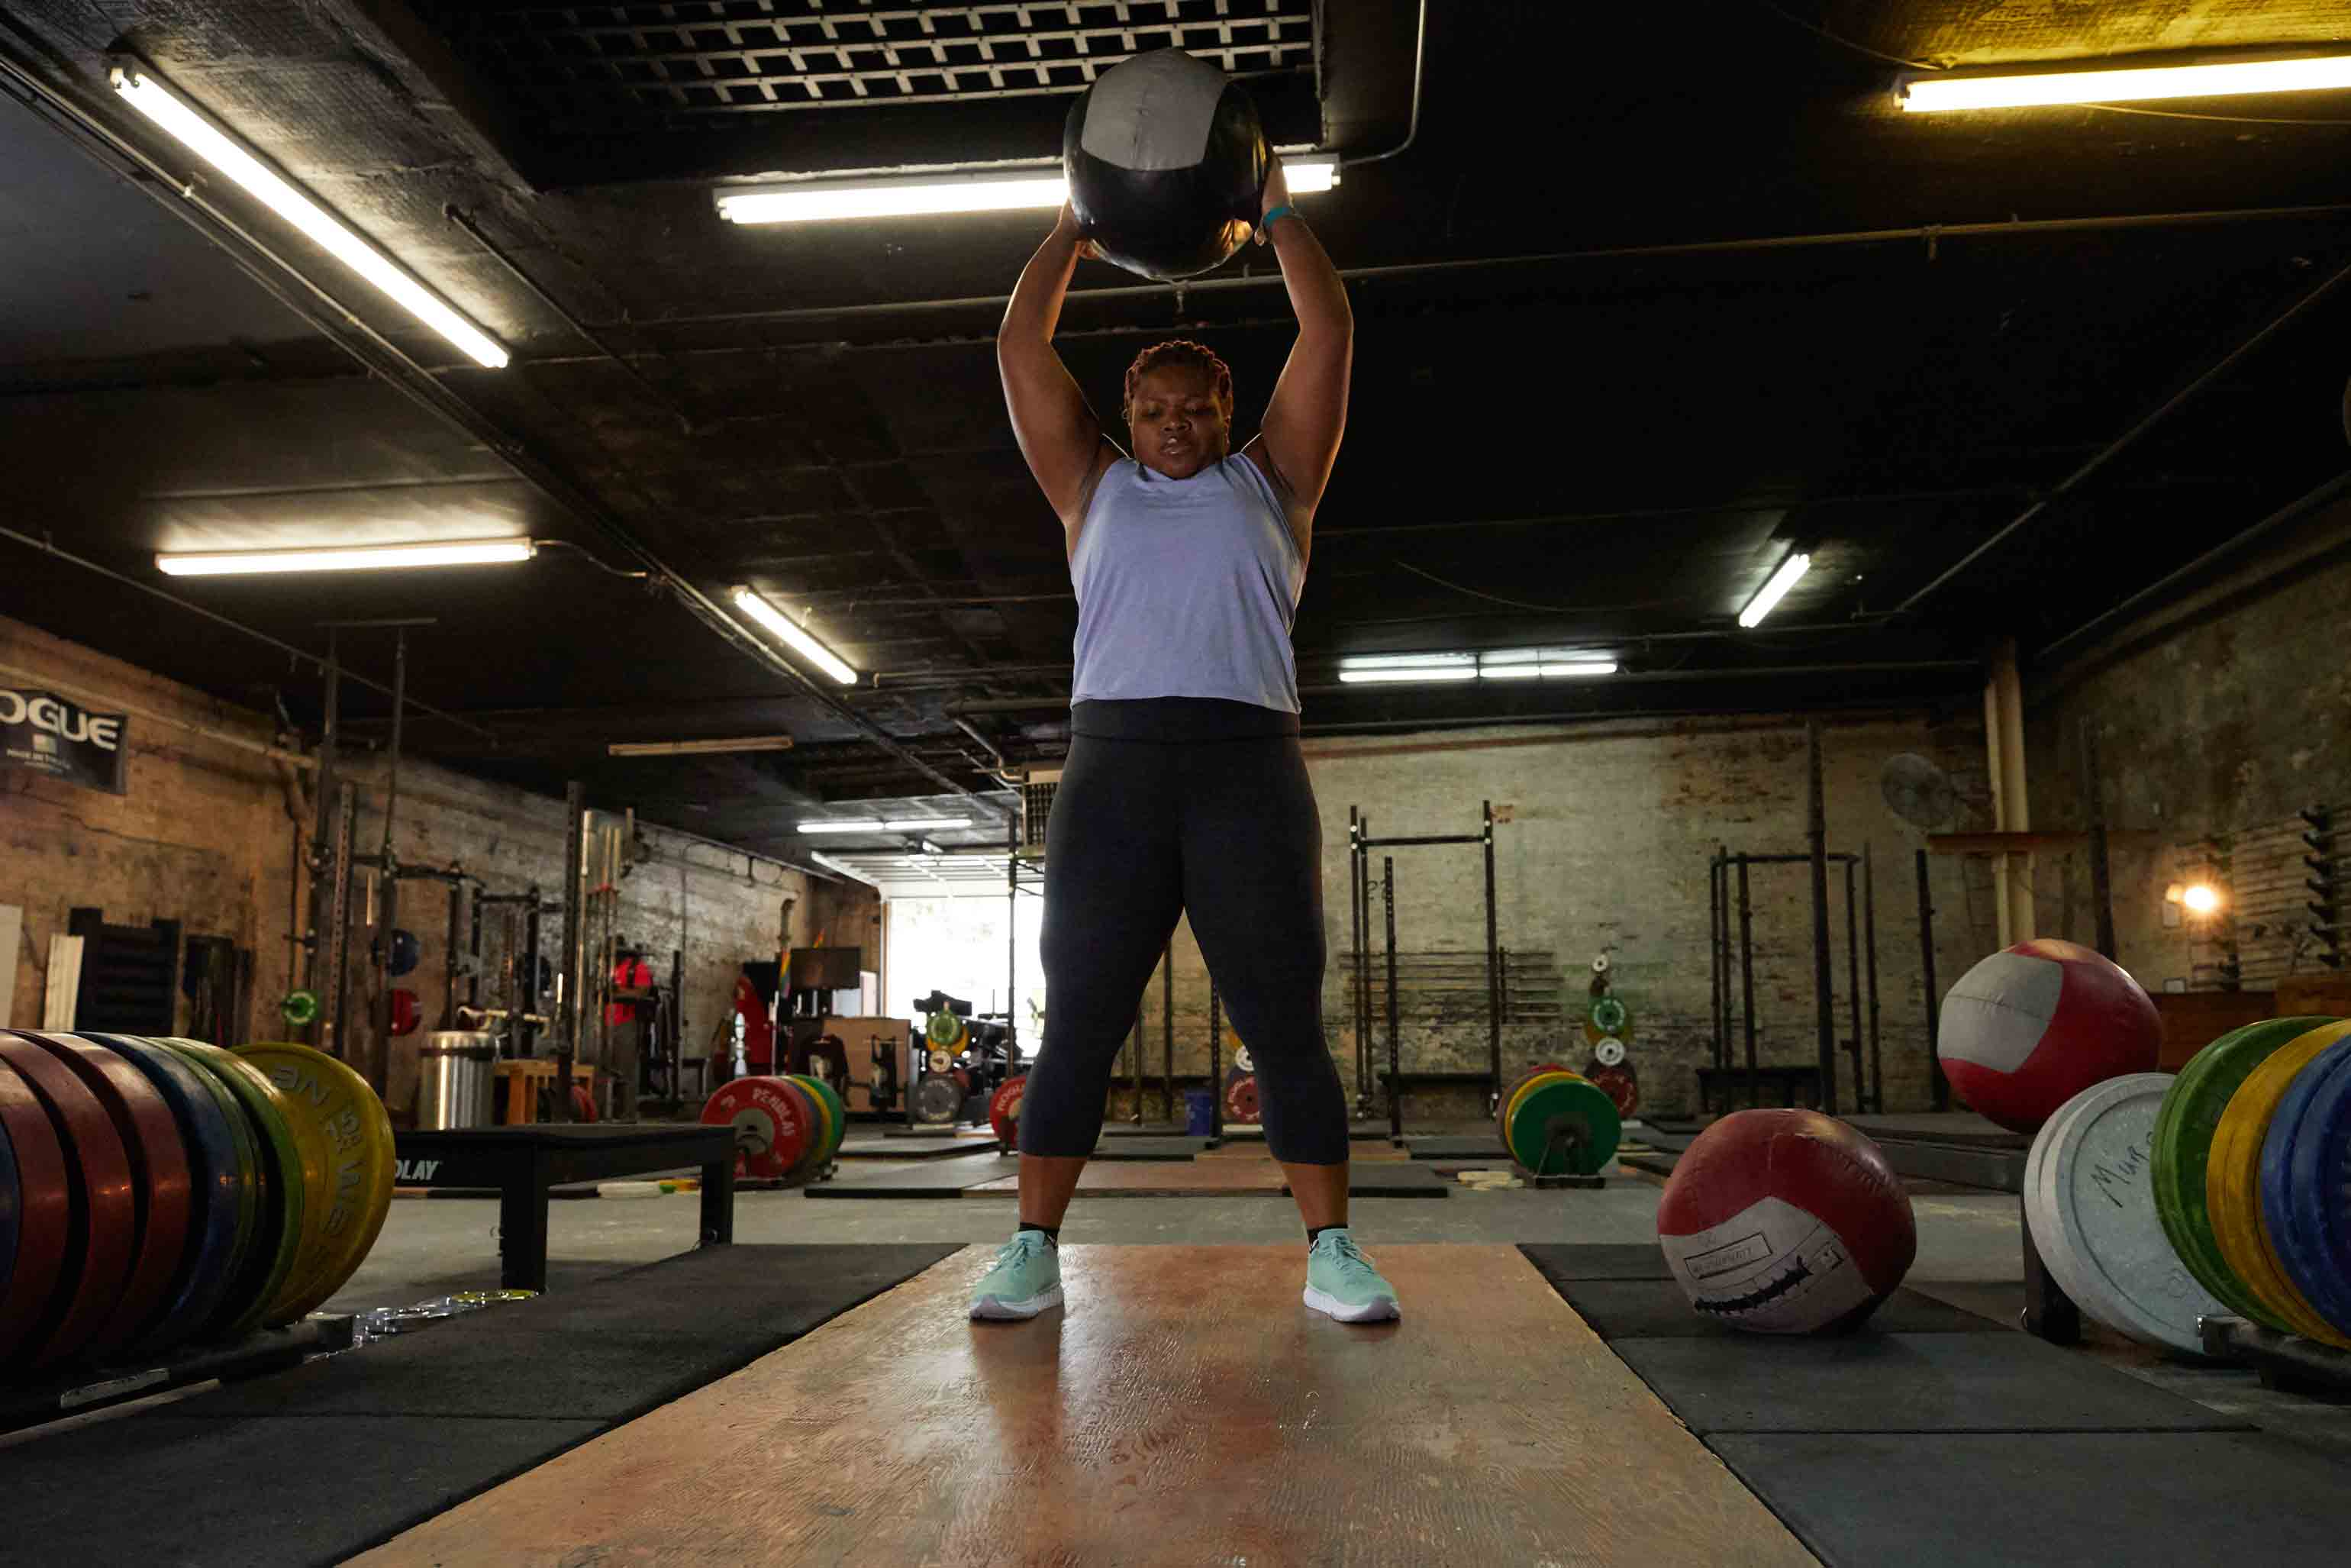 Cross training for the trails: Latoya Shauntay Snell's go-to HIIT workout